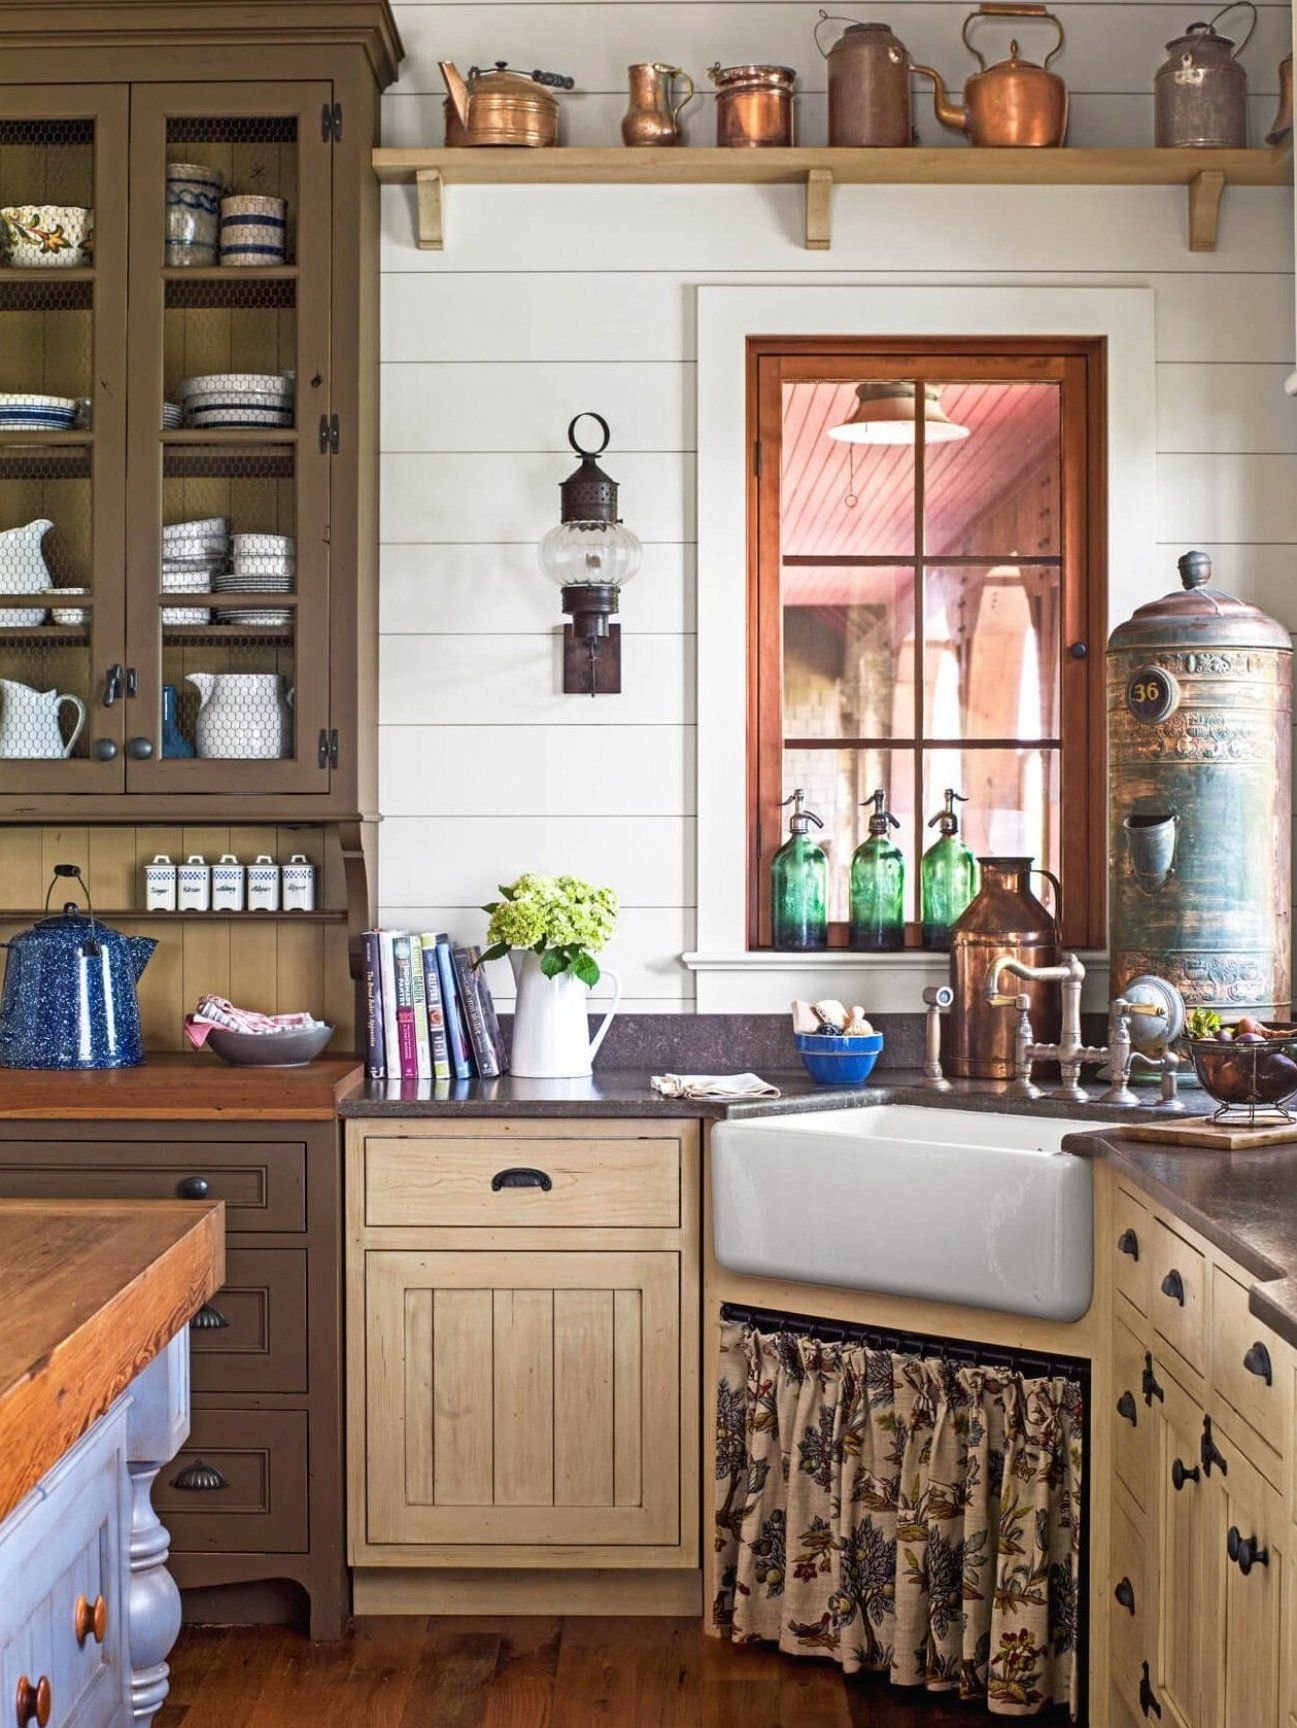 34 Best Vintage Kitchen Decor Ideas And Designs For 2020 Amazing Room Decor Ideas For Sweet Houses In 2020 Interior Design Kitchen New Kitchen Designs Chic Kitchen